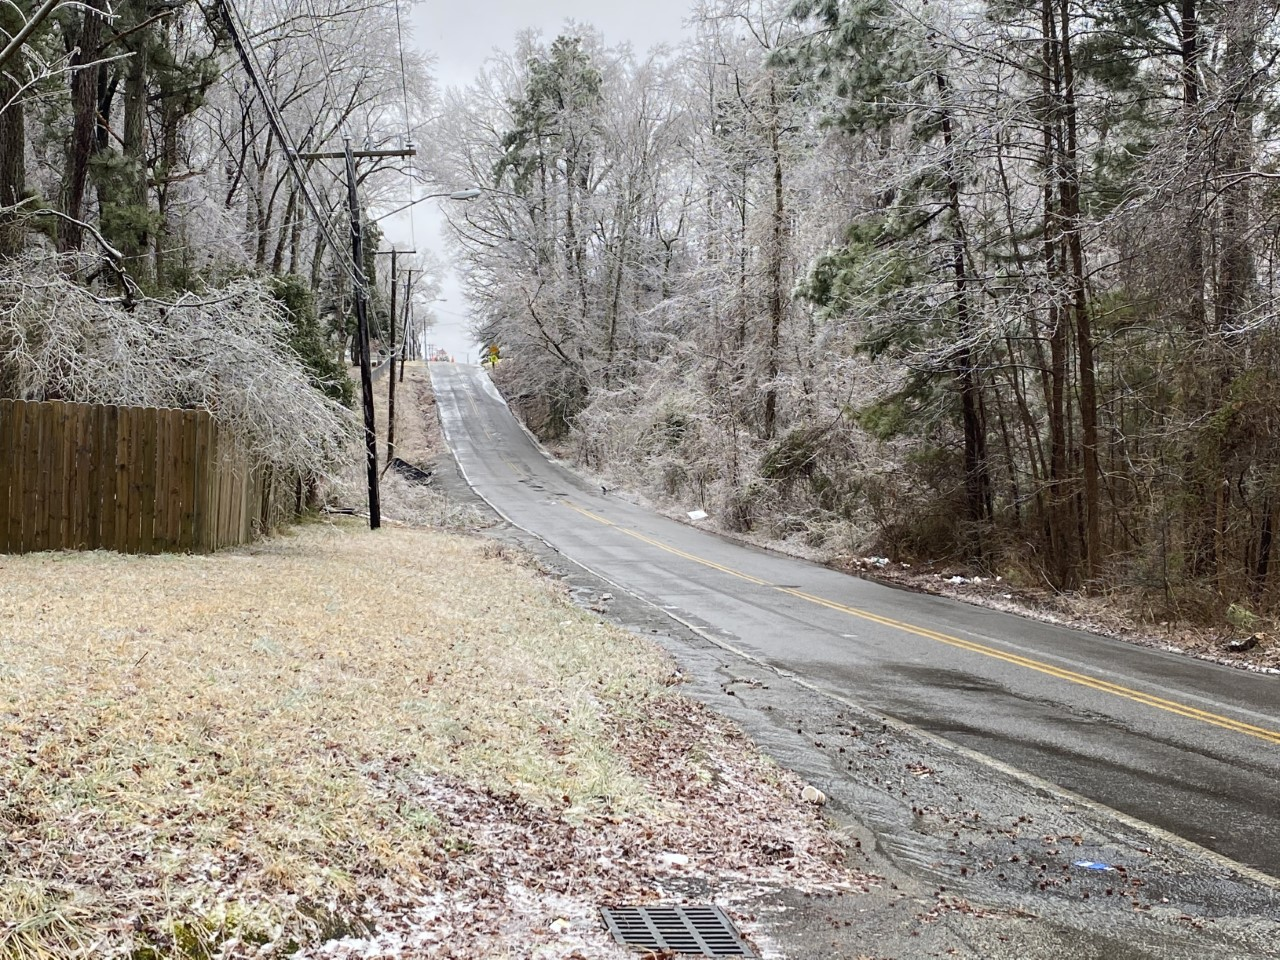 icy roads